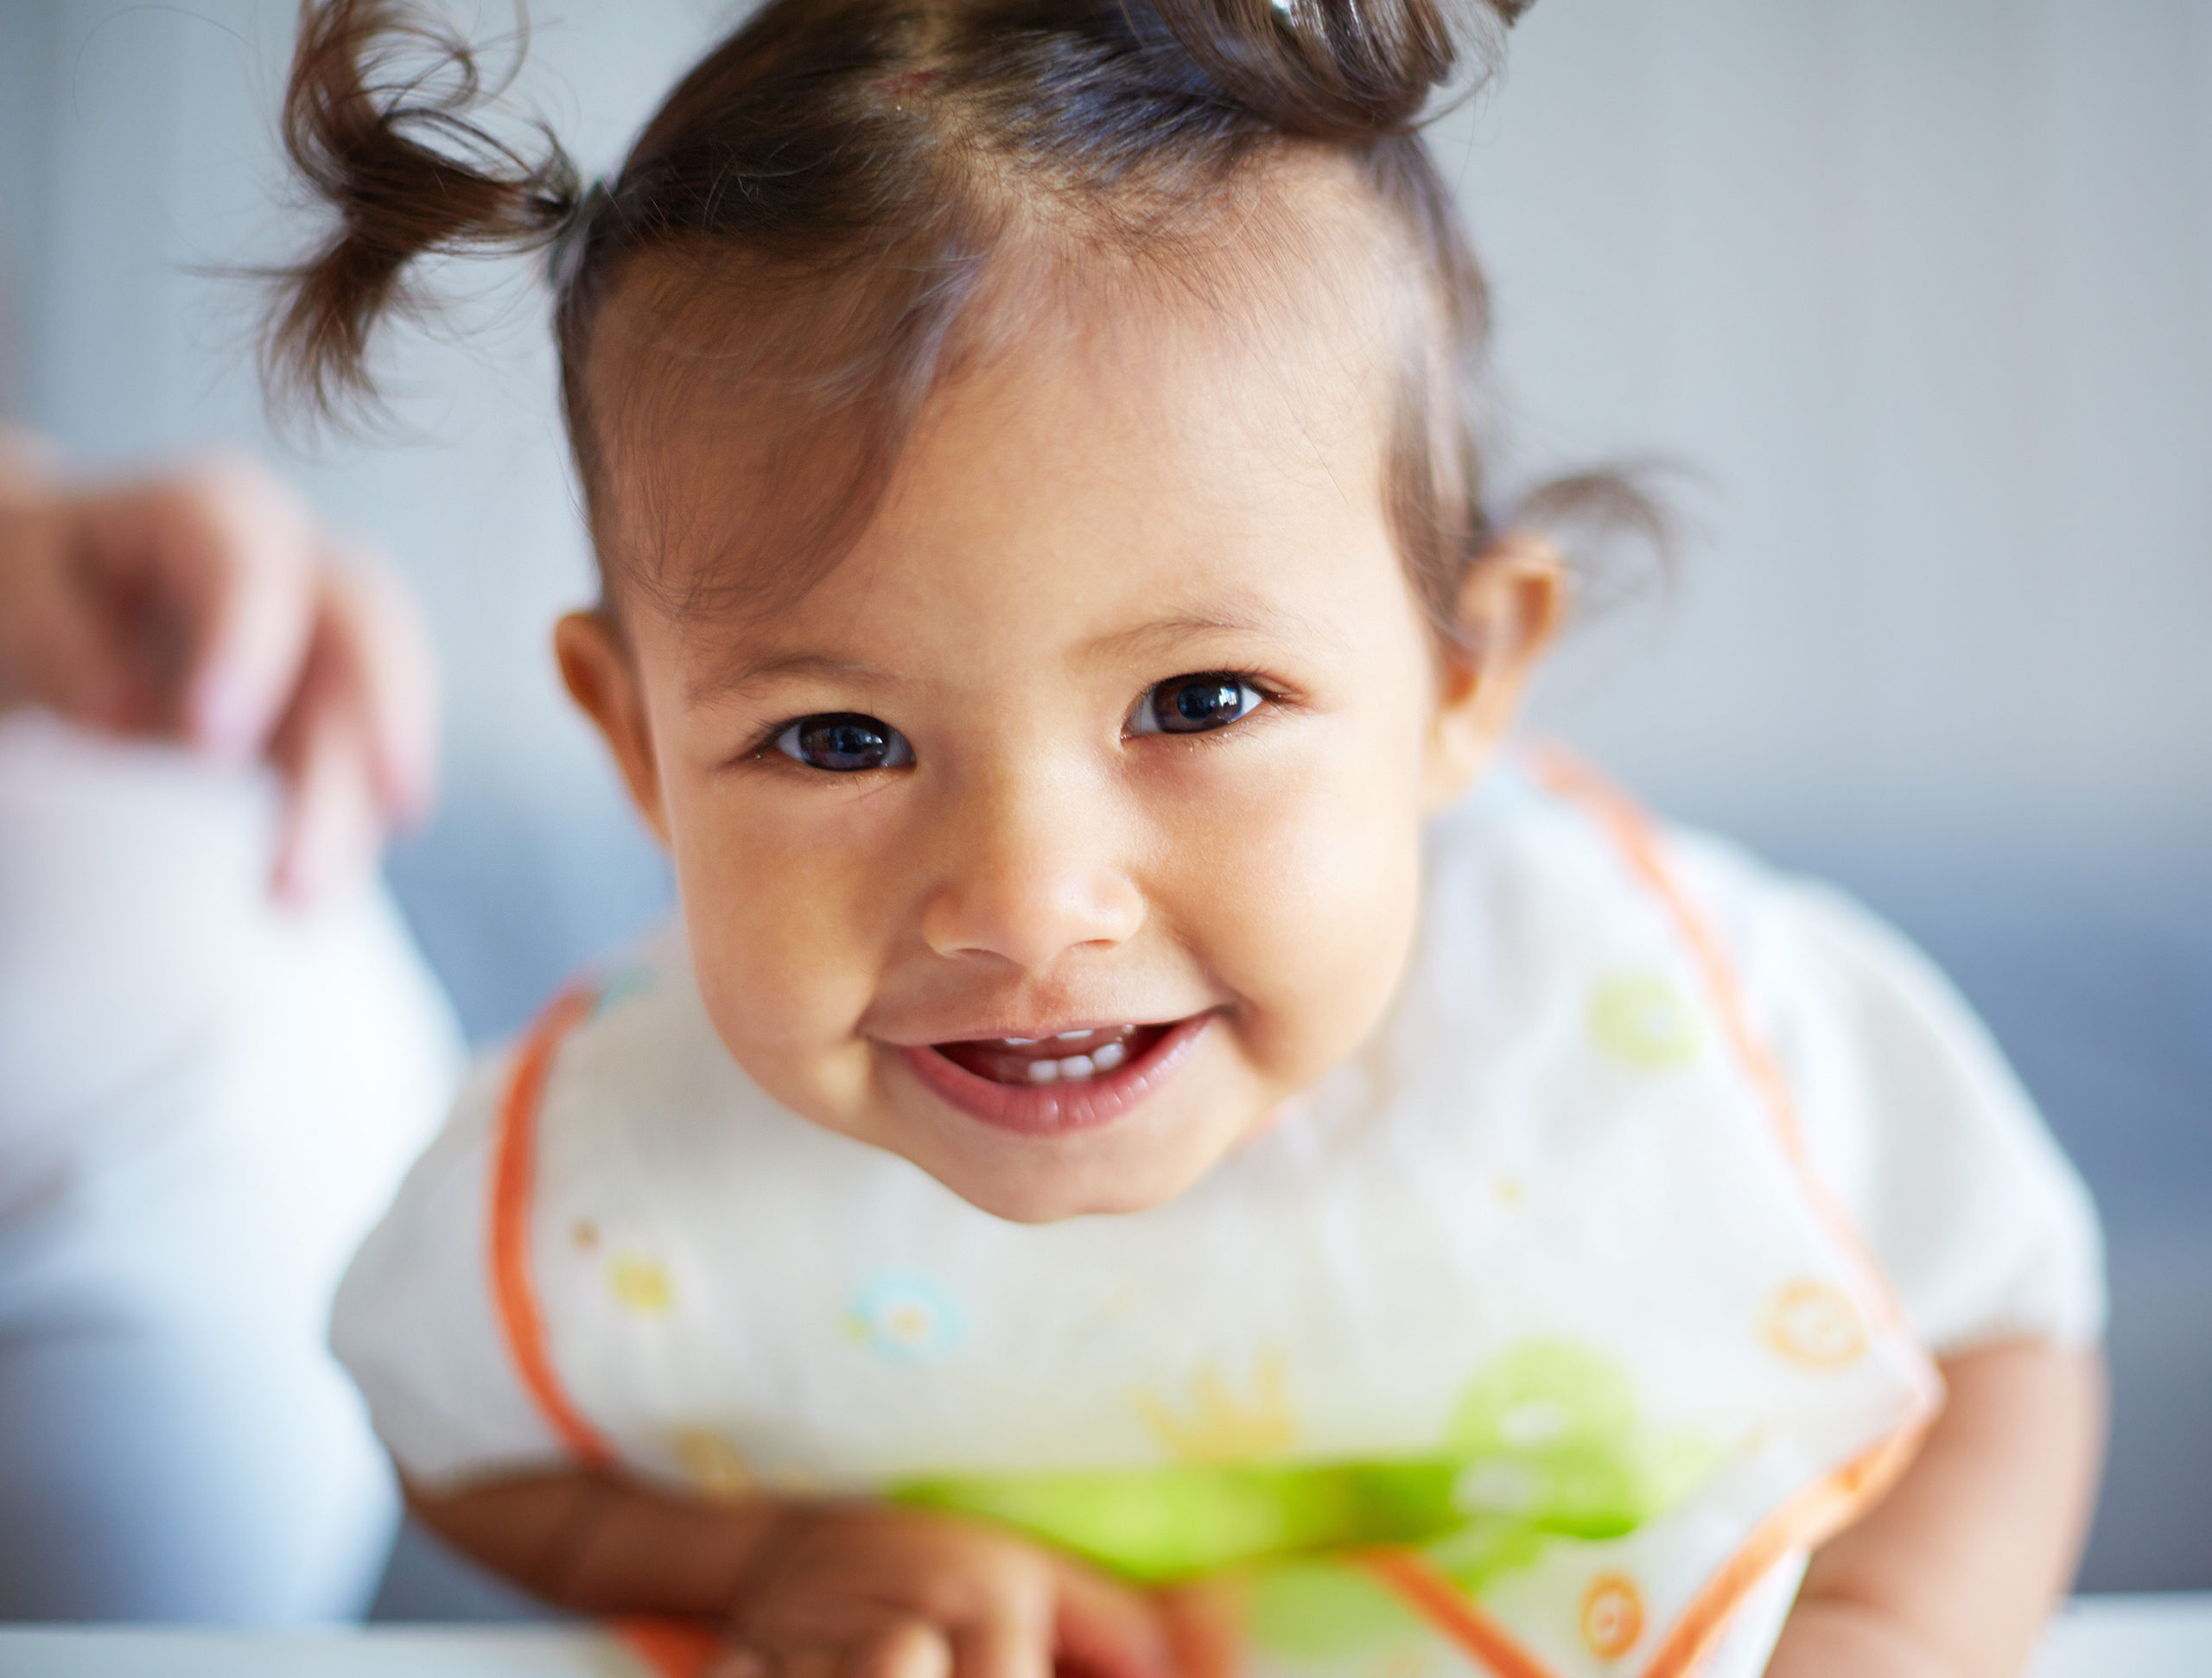 Portrait of a smiling cute toddler